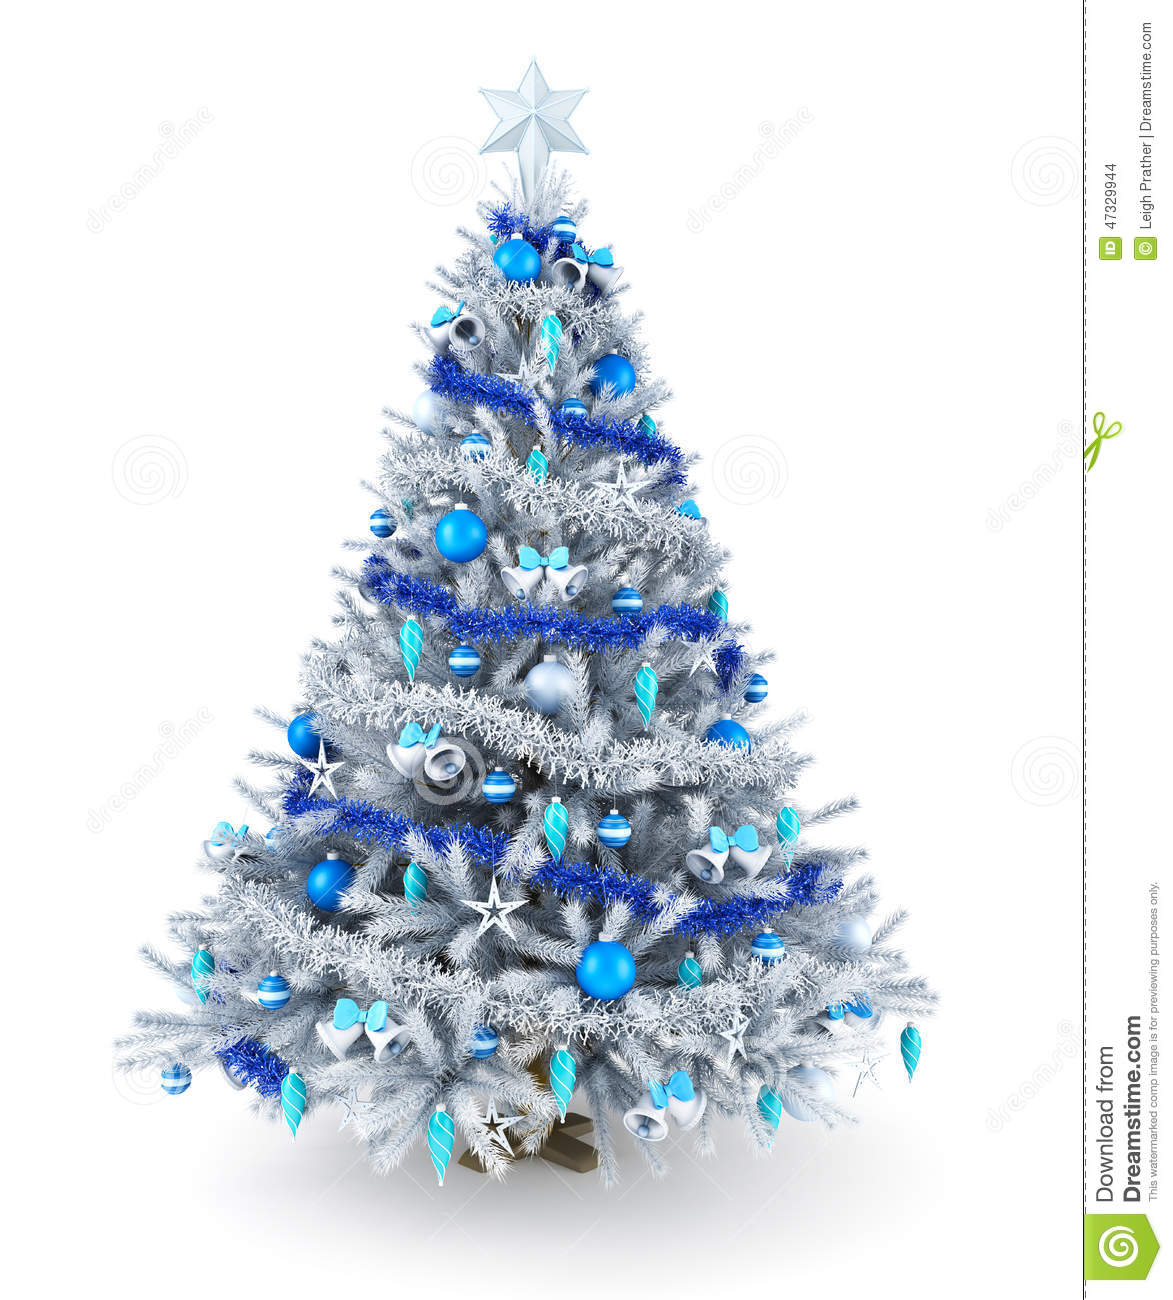 3d Wallpaper Decorating Ideas Silver And Blue Christmas Tree Stock Illustration